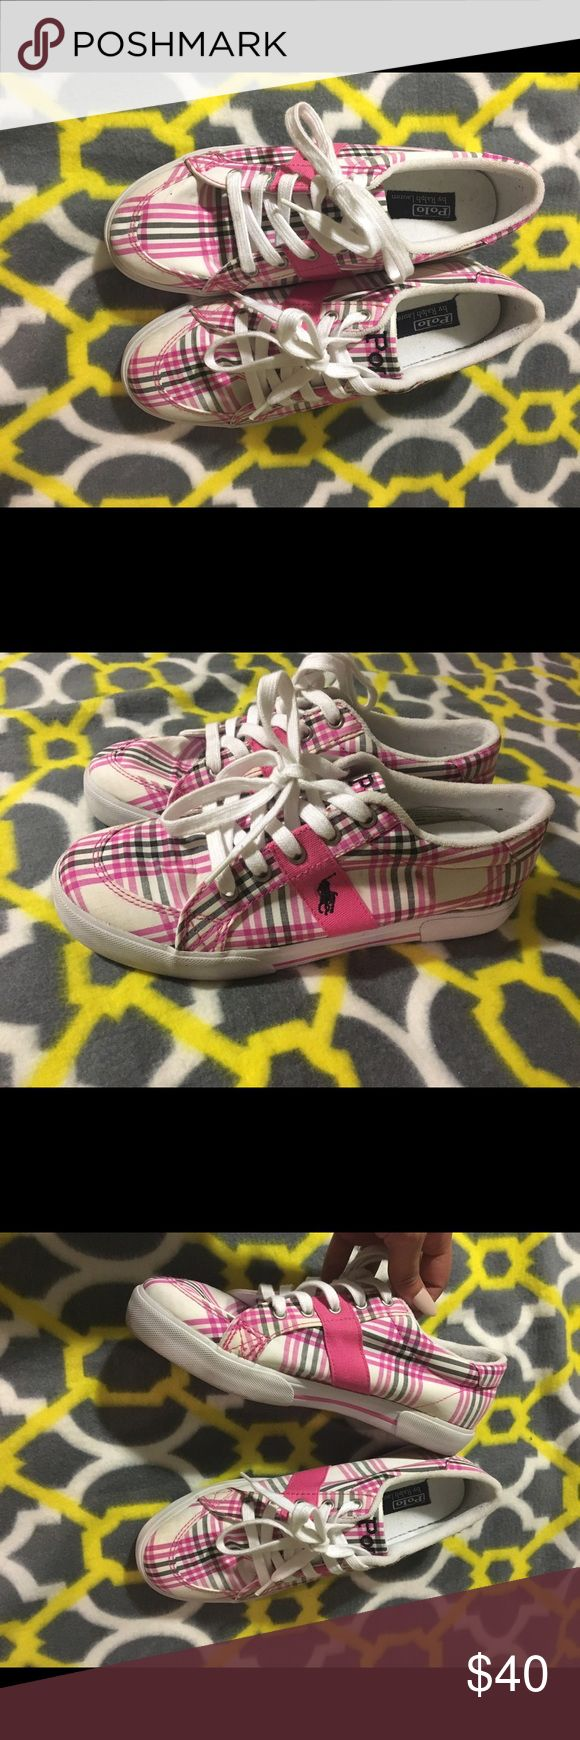 Women's polo shoes Pink & white polo shoes. Practically new I've only wore them twice. Inside of the sike are still clean & new. Cute shoes. Size 7.5 in women's Polo by Ralph Lauren Shoes Sneakers